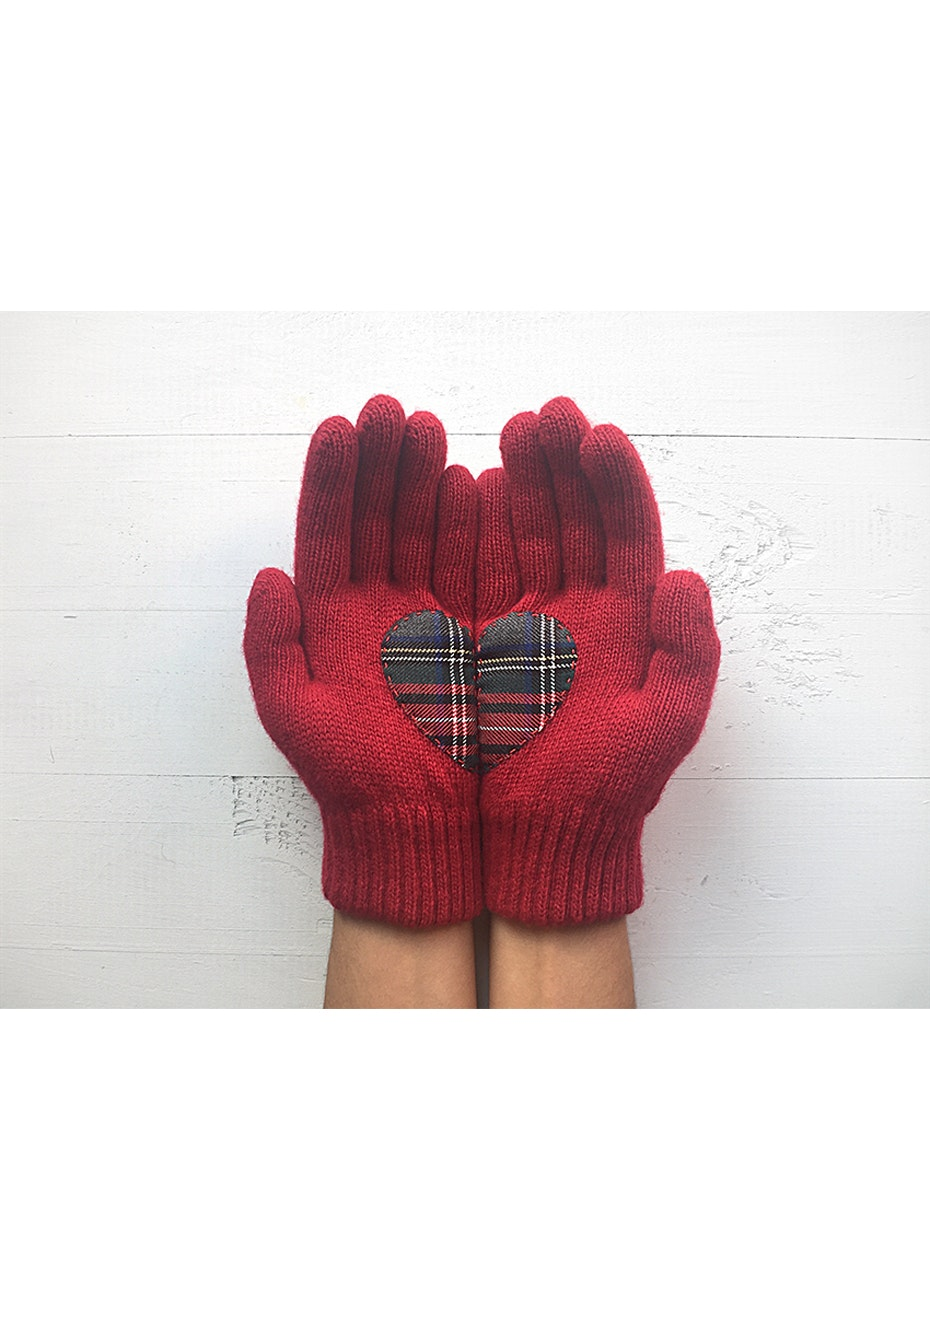 Heart Gloves - Deep Red/Plaid